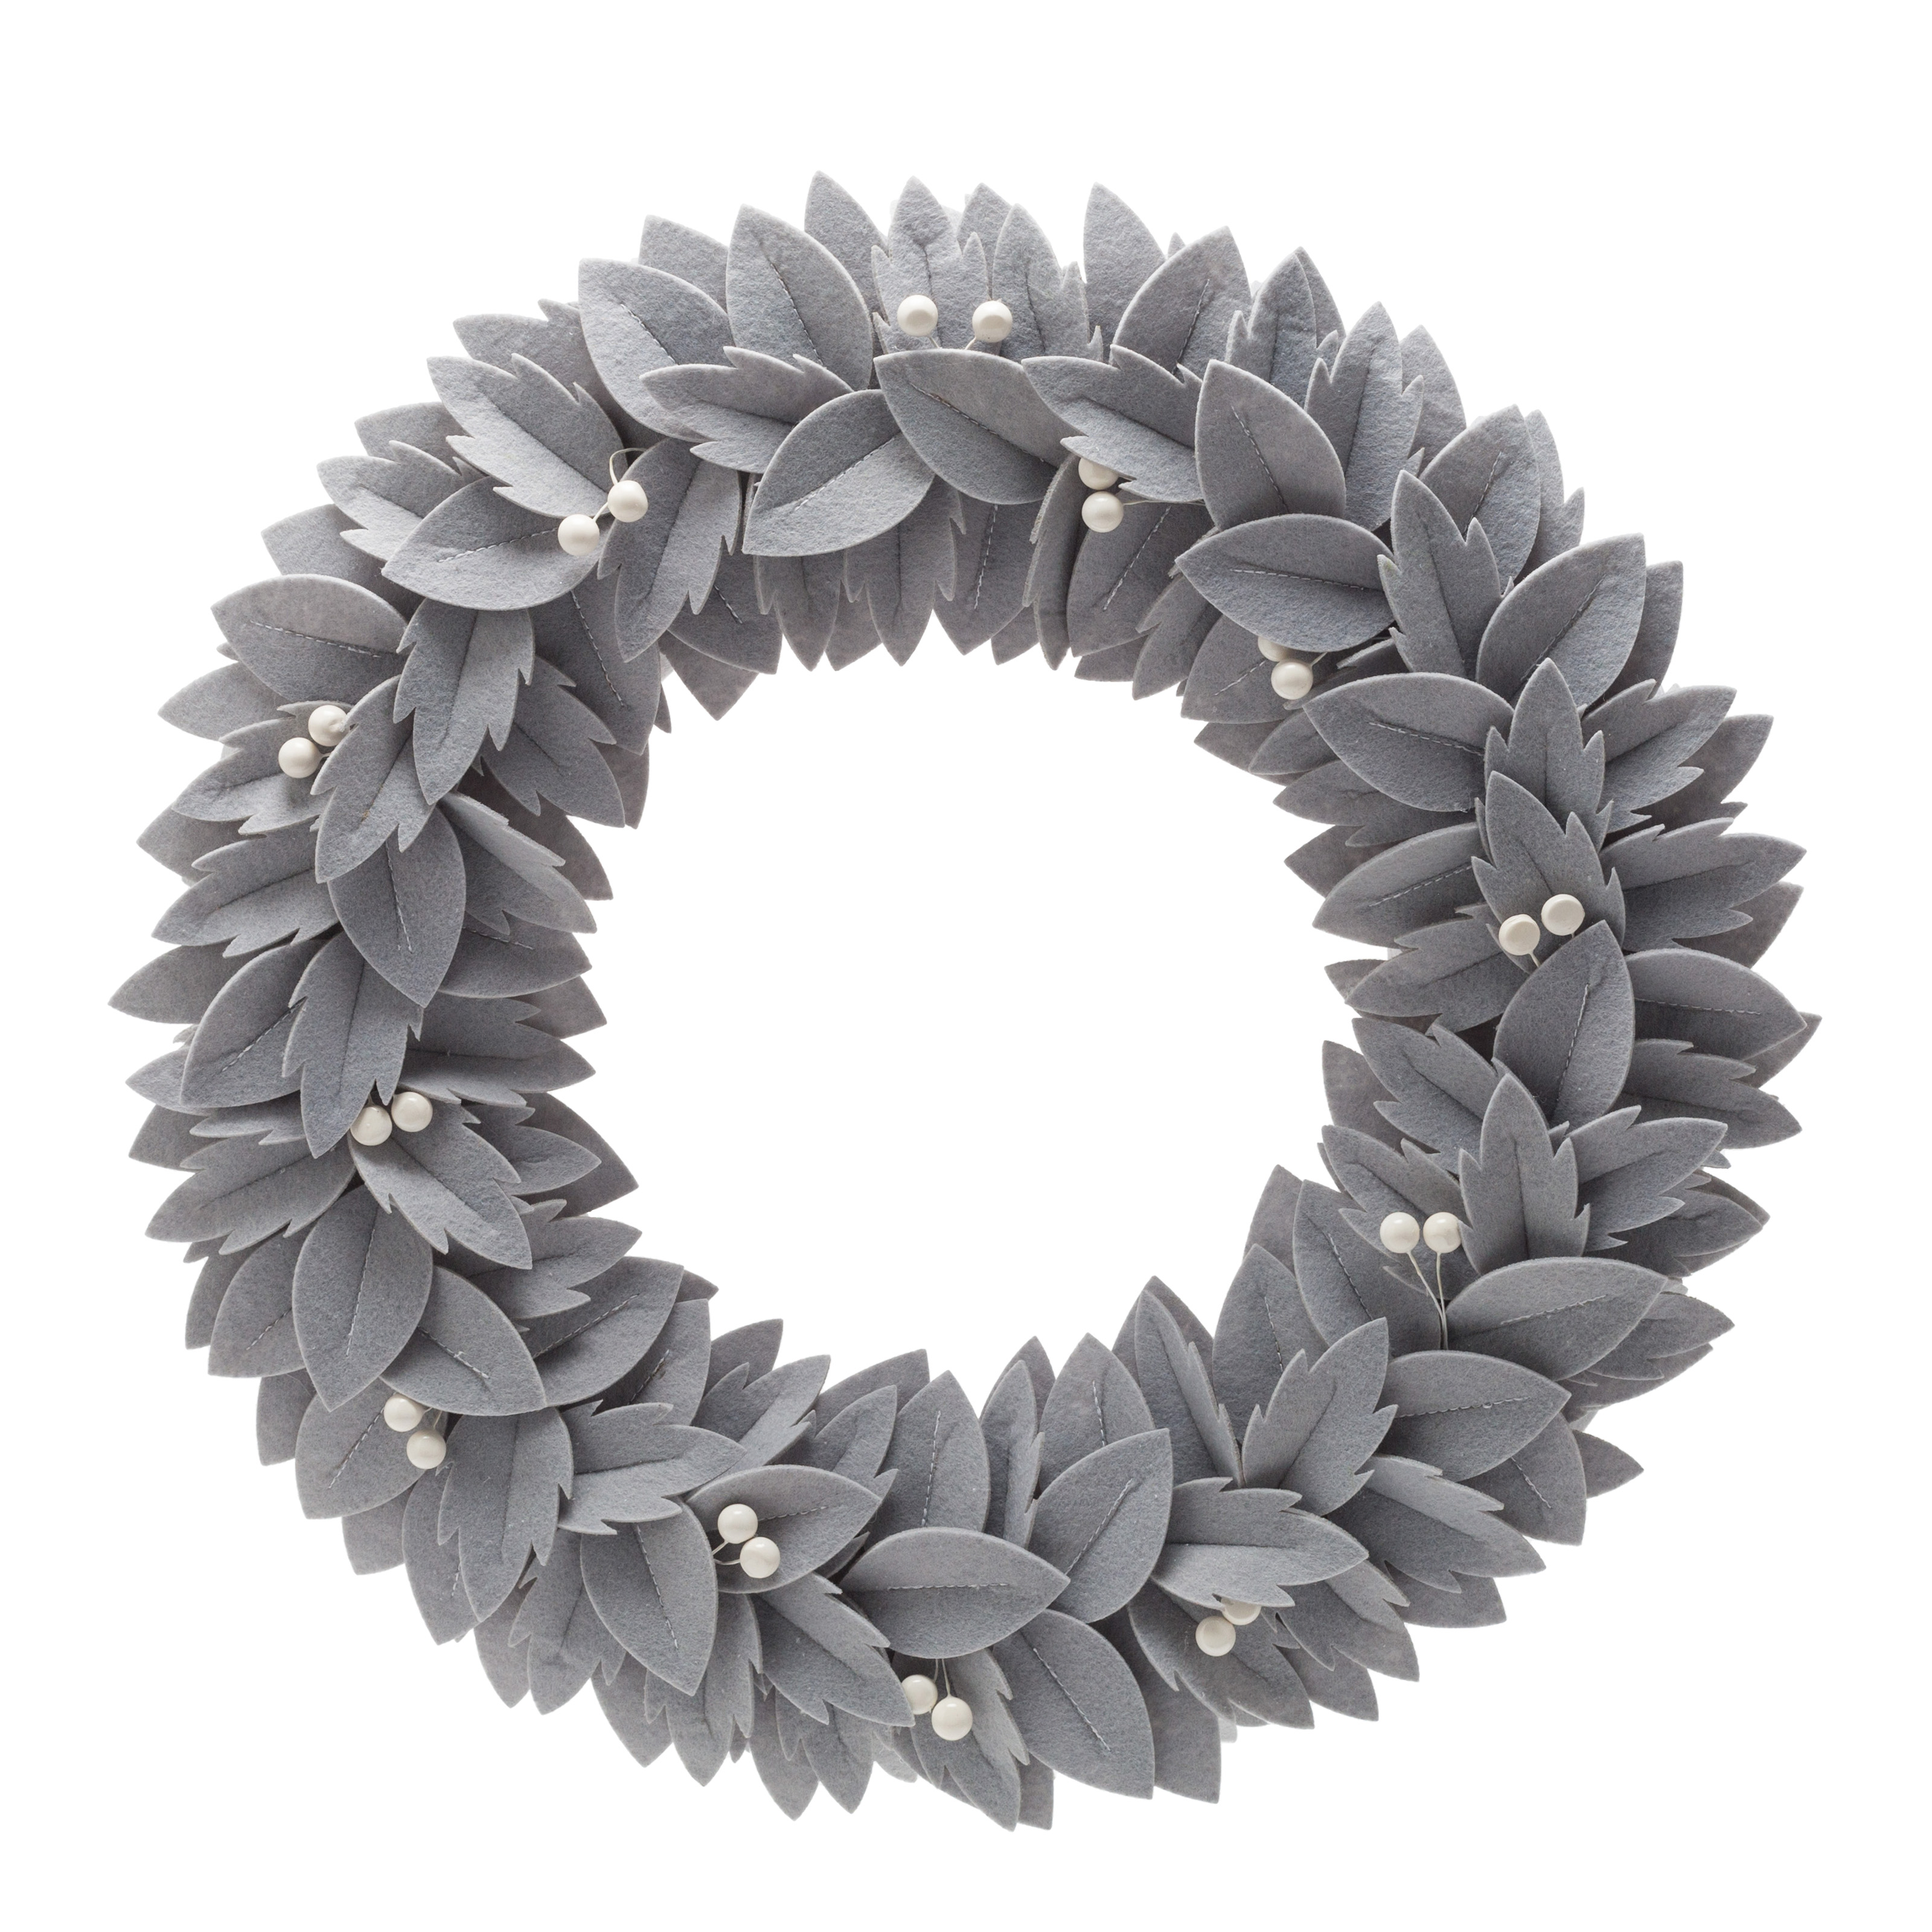 "Belham Living Neutral Felt Christmas Wreath, 22"" diameter"